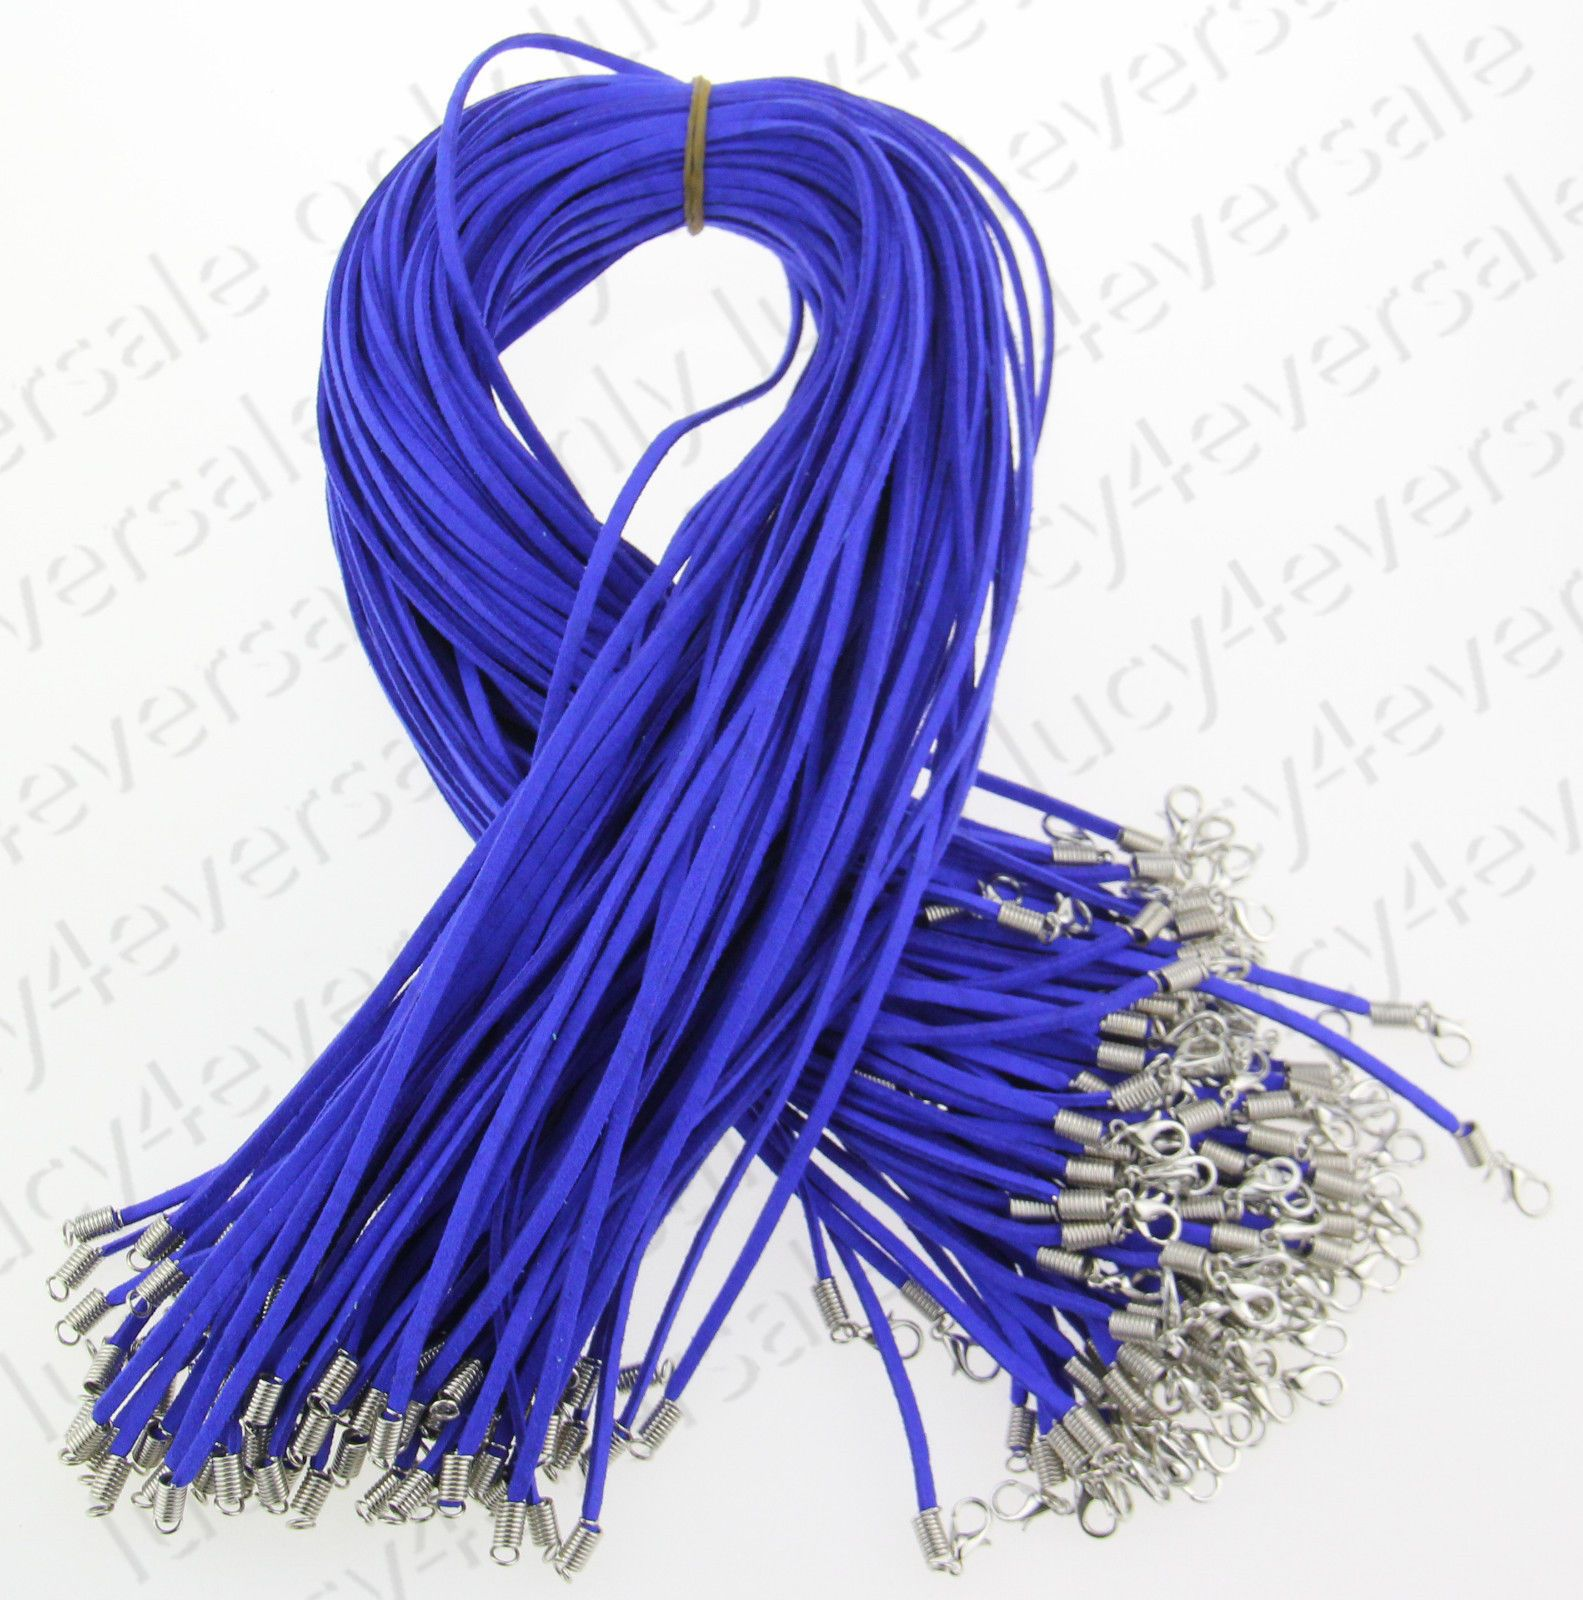 10 PCS Wholesale Suede Leather String Necklace Cords With Clasp DIY Jewelry